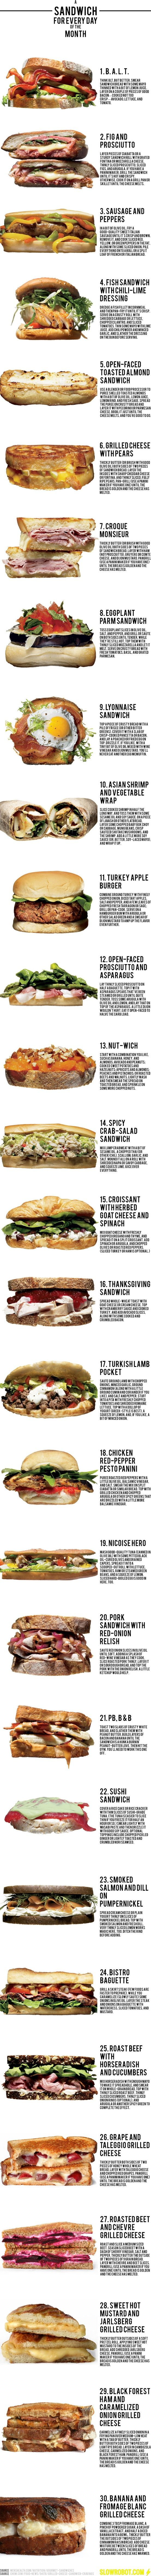 Always looking for new sandwich ideas and here is a list of 30 - one for every day of the month!